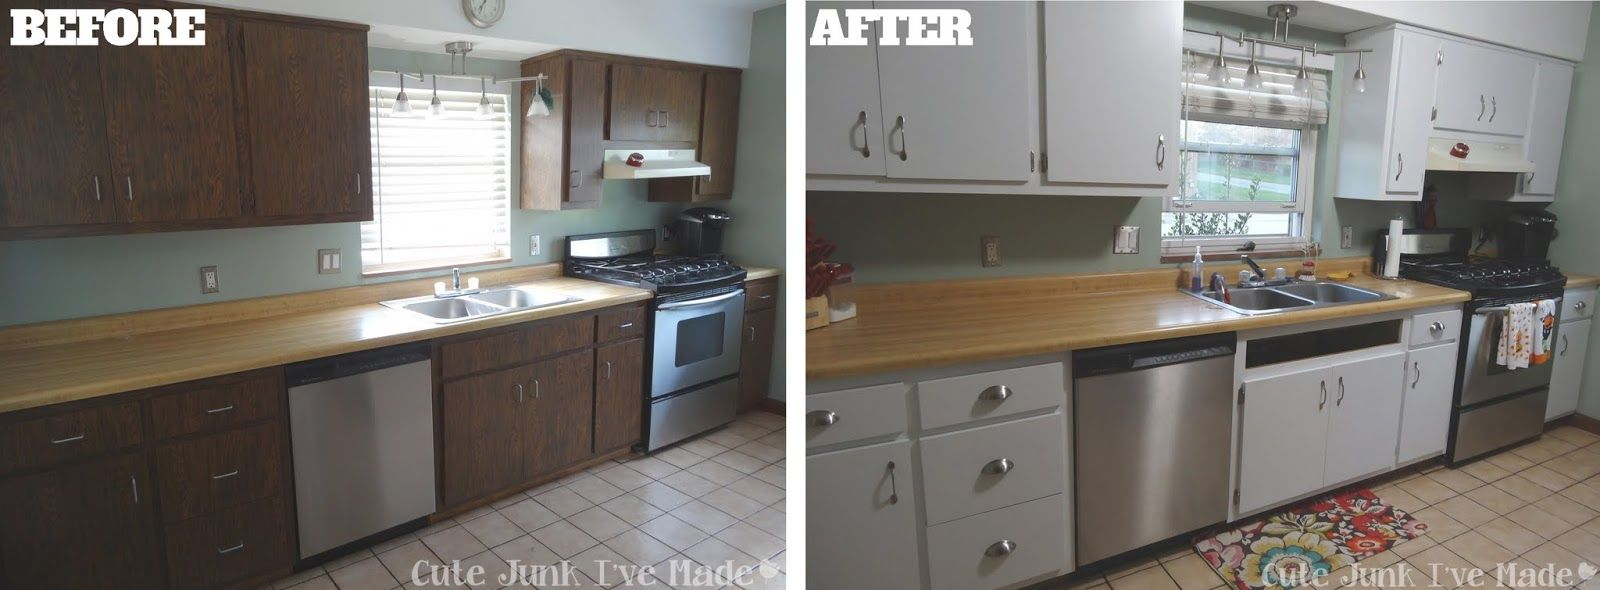 How to Paint Laminate Cabinets - Before & After- use old kitchen ...